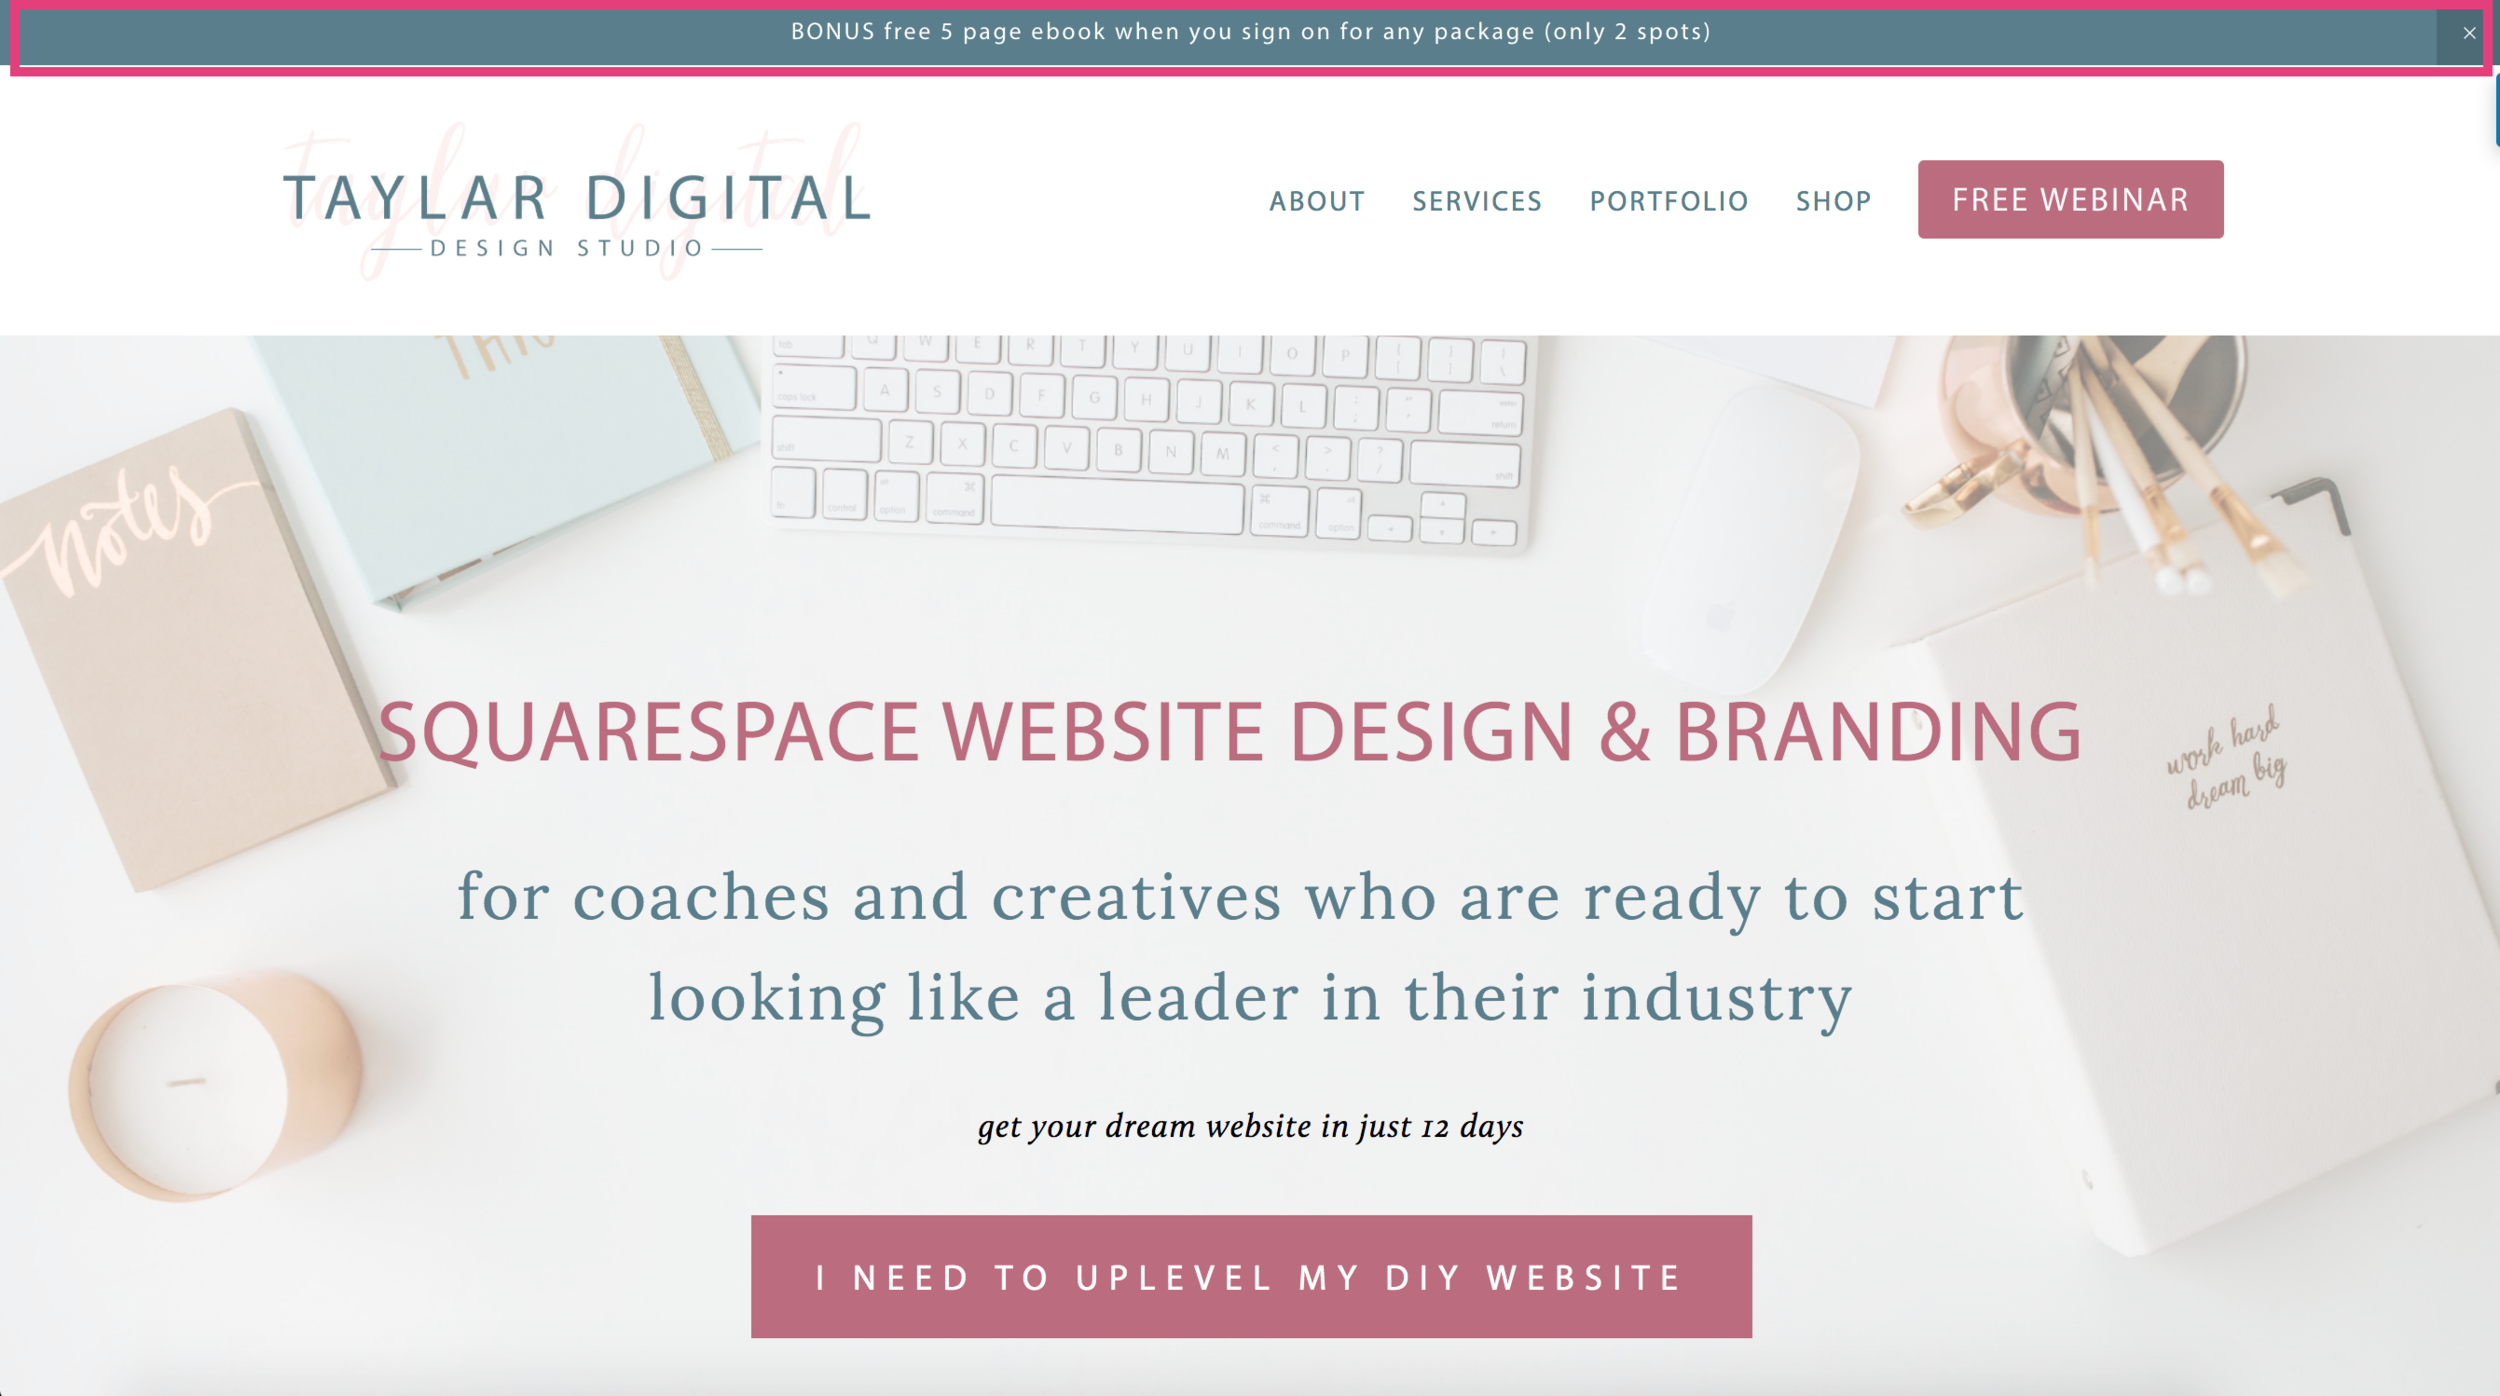 7 Places to Promote Your Freebie on Your Squarespace Website 1.png